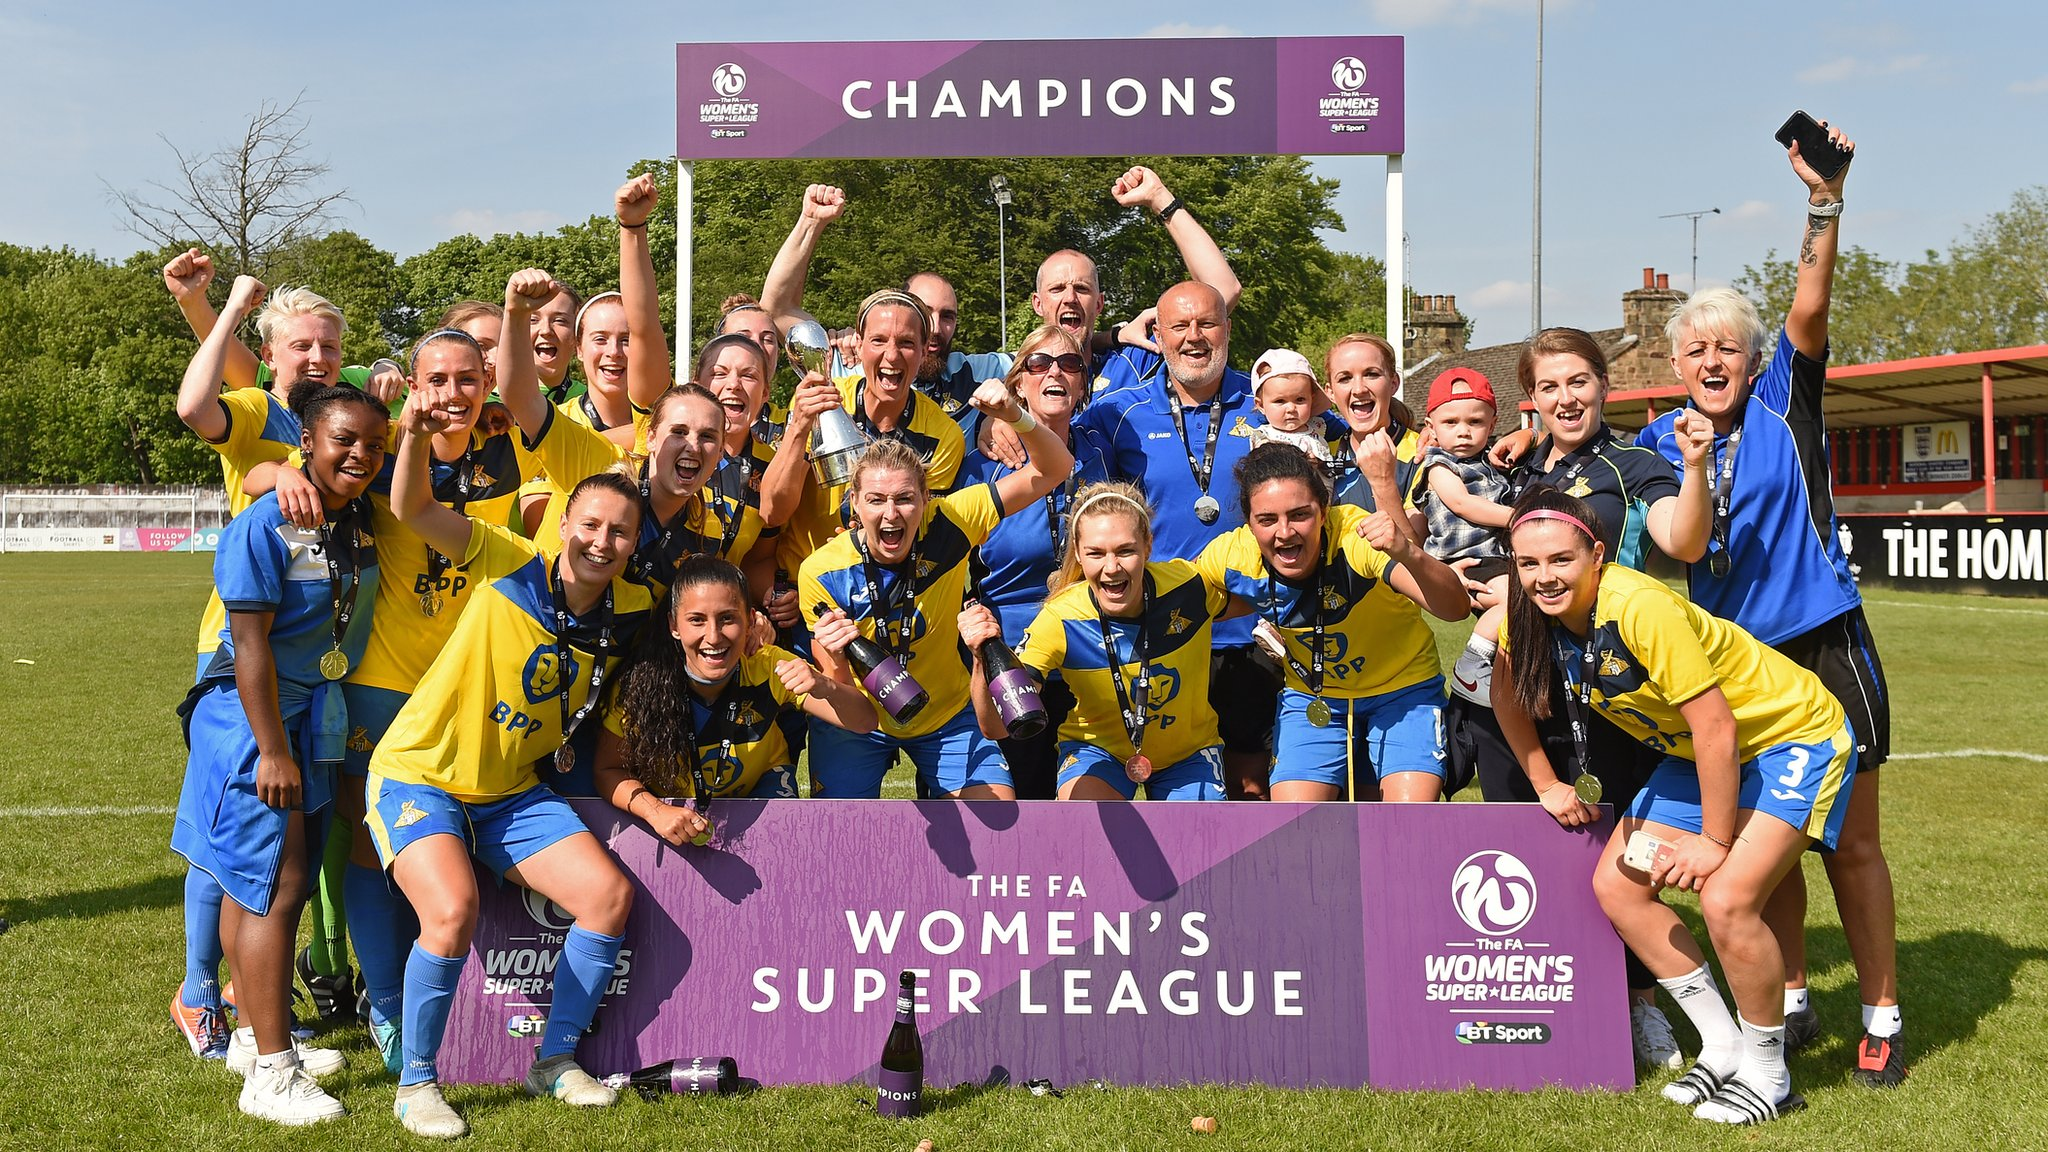 Doncaster Rovers Belles: WSL 2 champions discuss merger with men's club | BBC